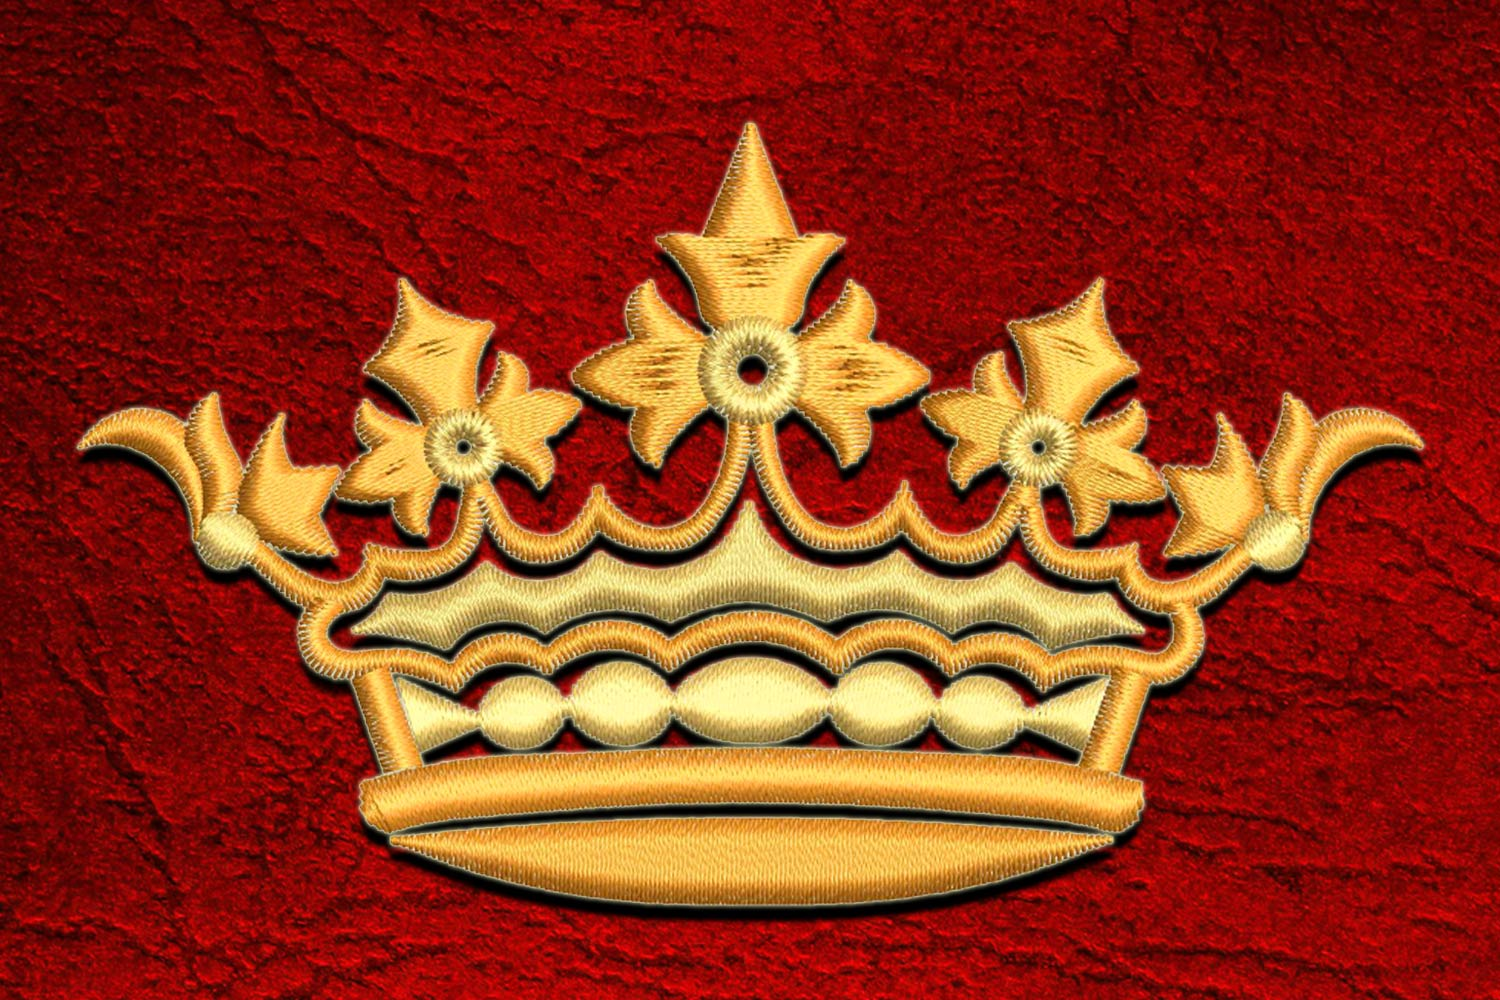 Crown3 embroidery design